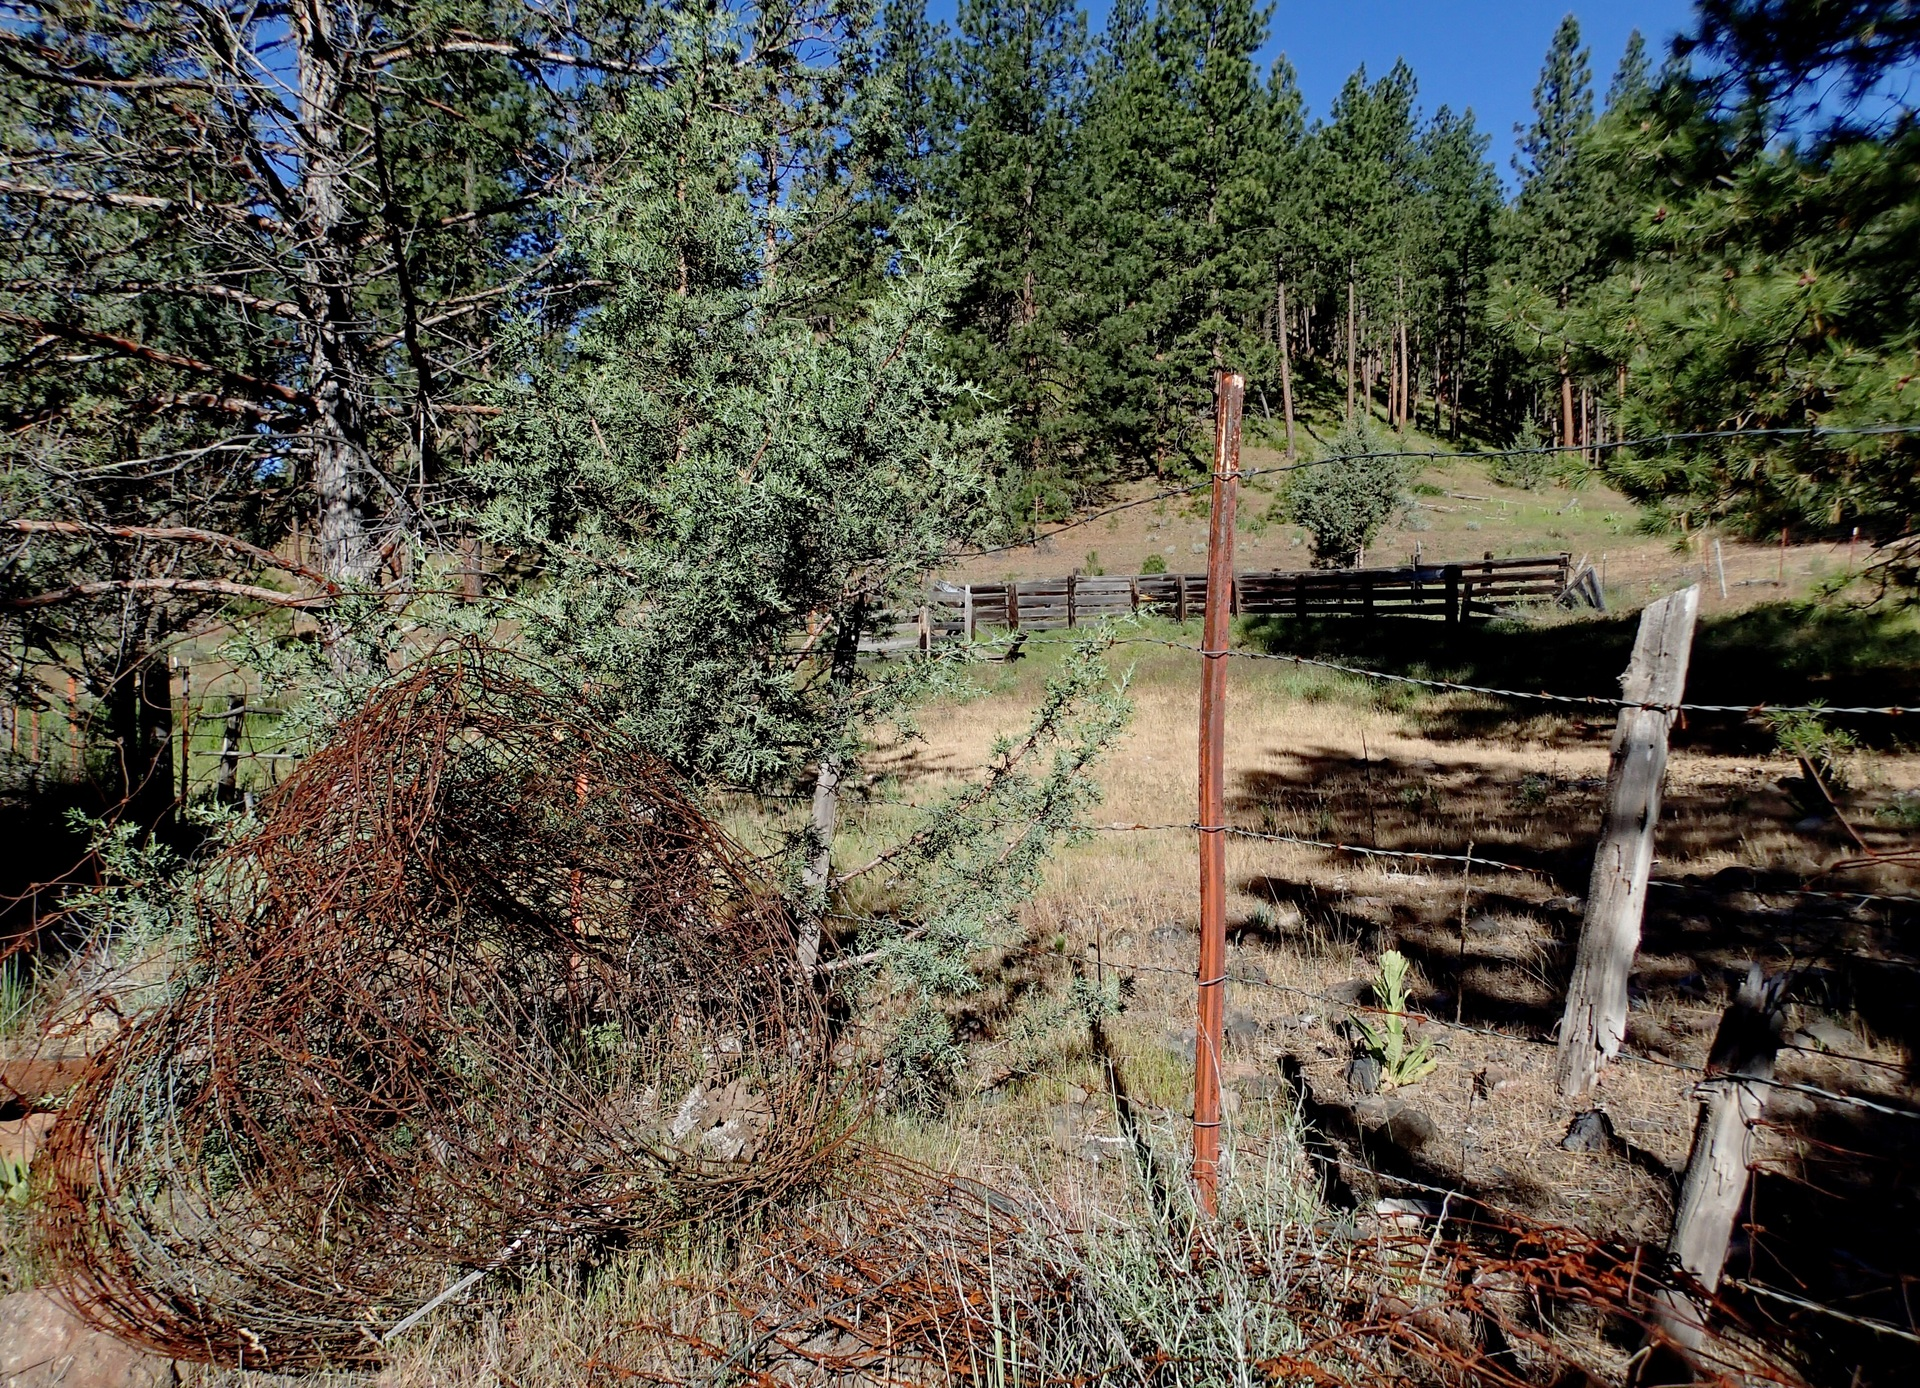 A metal post and barb wire in the foreground and wooden fence in the background on a tree covered hill on a ranch in the forests of Central Oregon on a summer day.